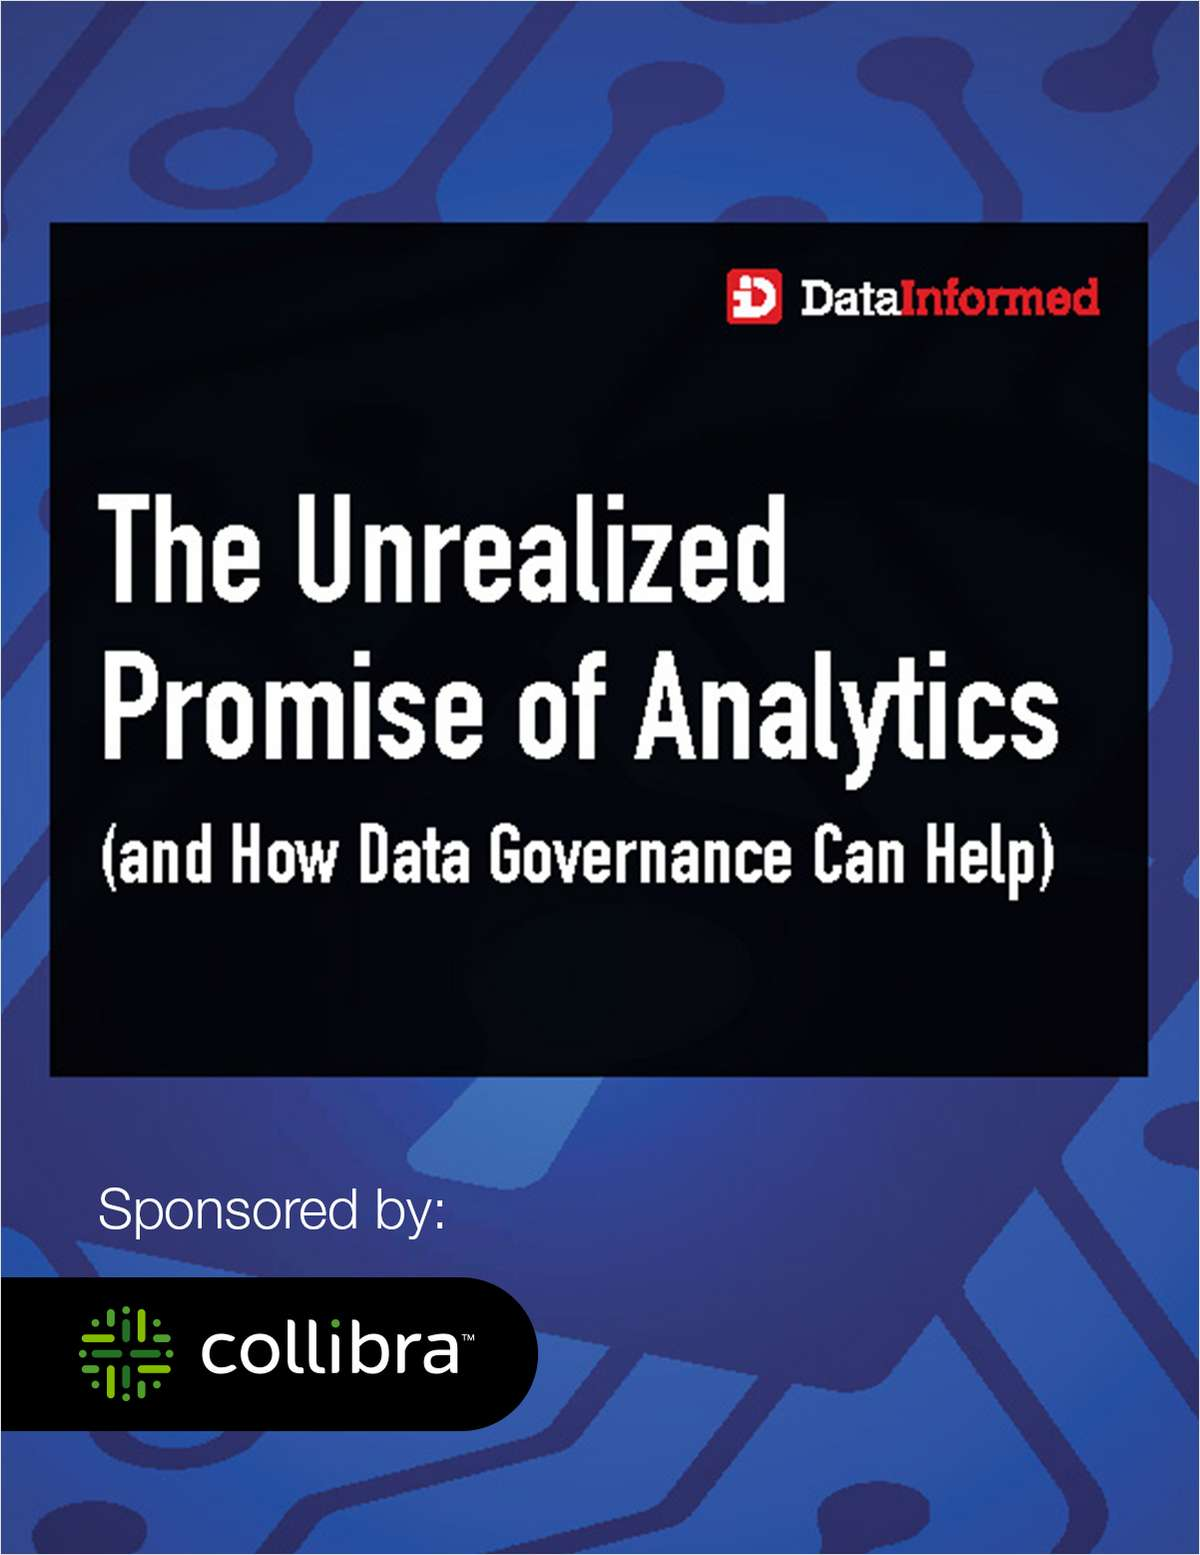 The Unrealized Promise of Analytics (and How Data Governance Can Help)